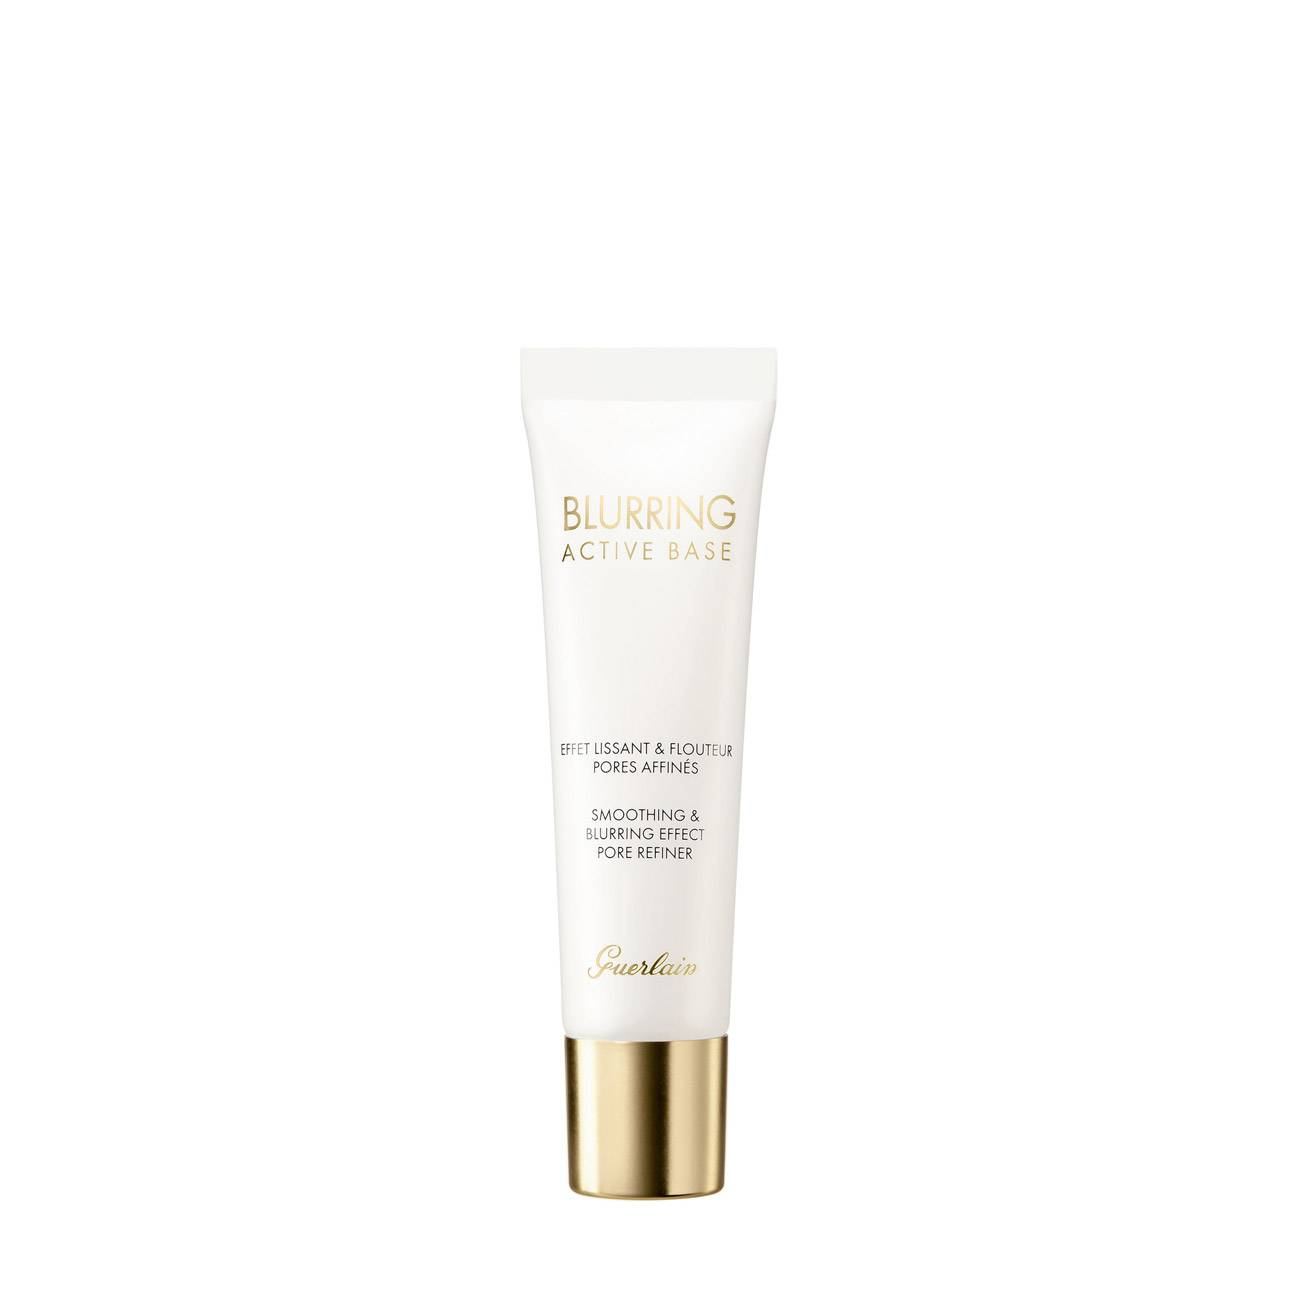 Blurring Active Base 30 Grame Guerlain imagine 2021 bestvalue.eu